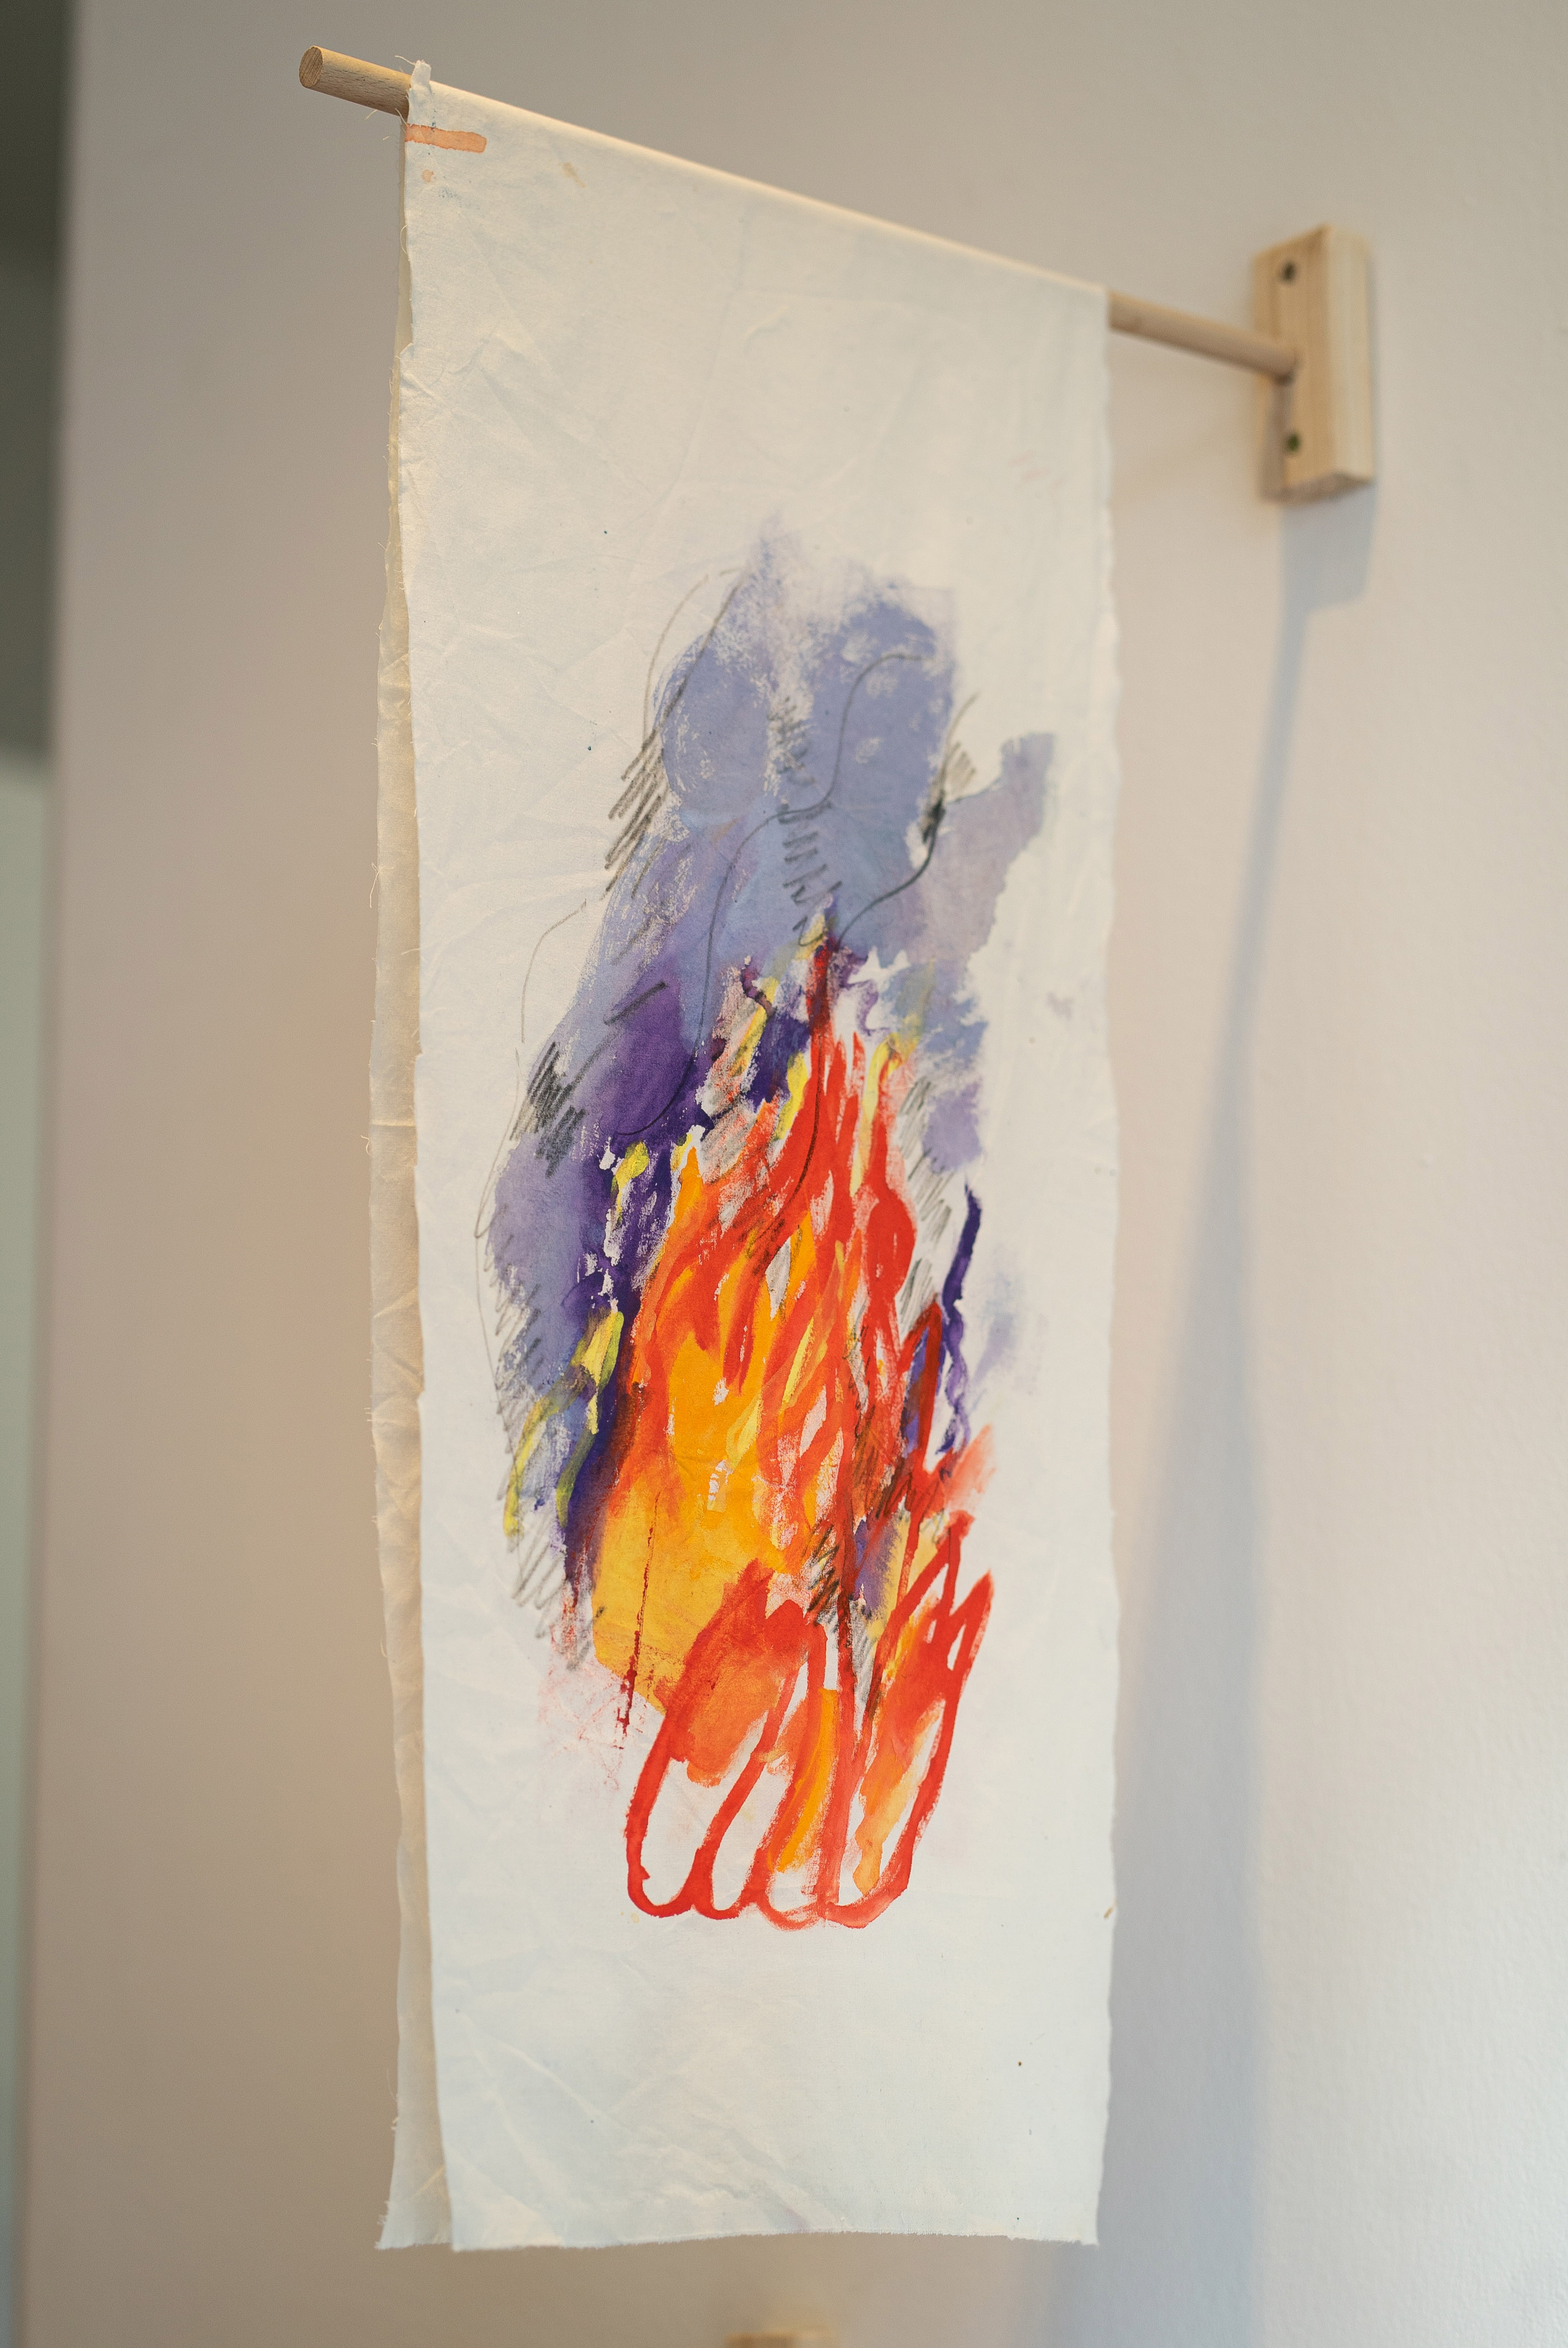 "The photo shows a piece of rectangular antique white fabric hanging from a wooden pole on the wall. It resembles a coat of arms. A fire is painted on the fabric with bright red, orange and purple colors. The coat of arms is part of the stage installation by Irene Fernandez Arcas for the exhibition ""Burlungis"" at Galerie im Turm in Berlin."